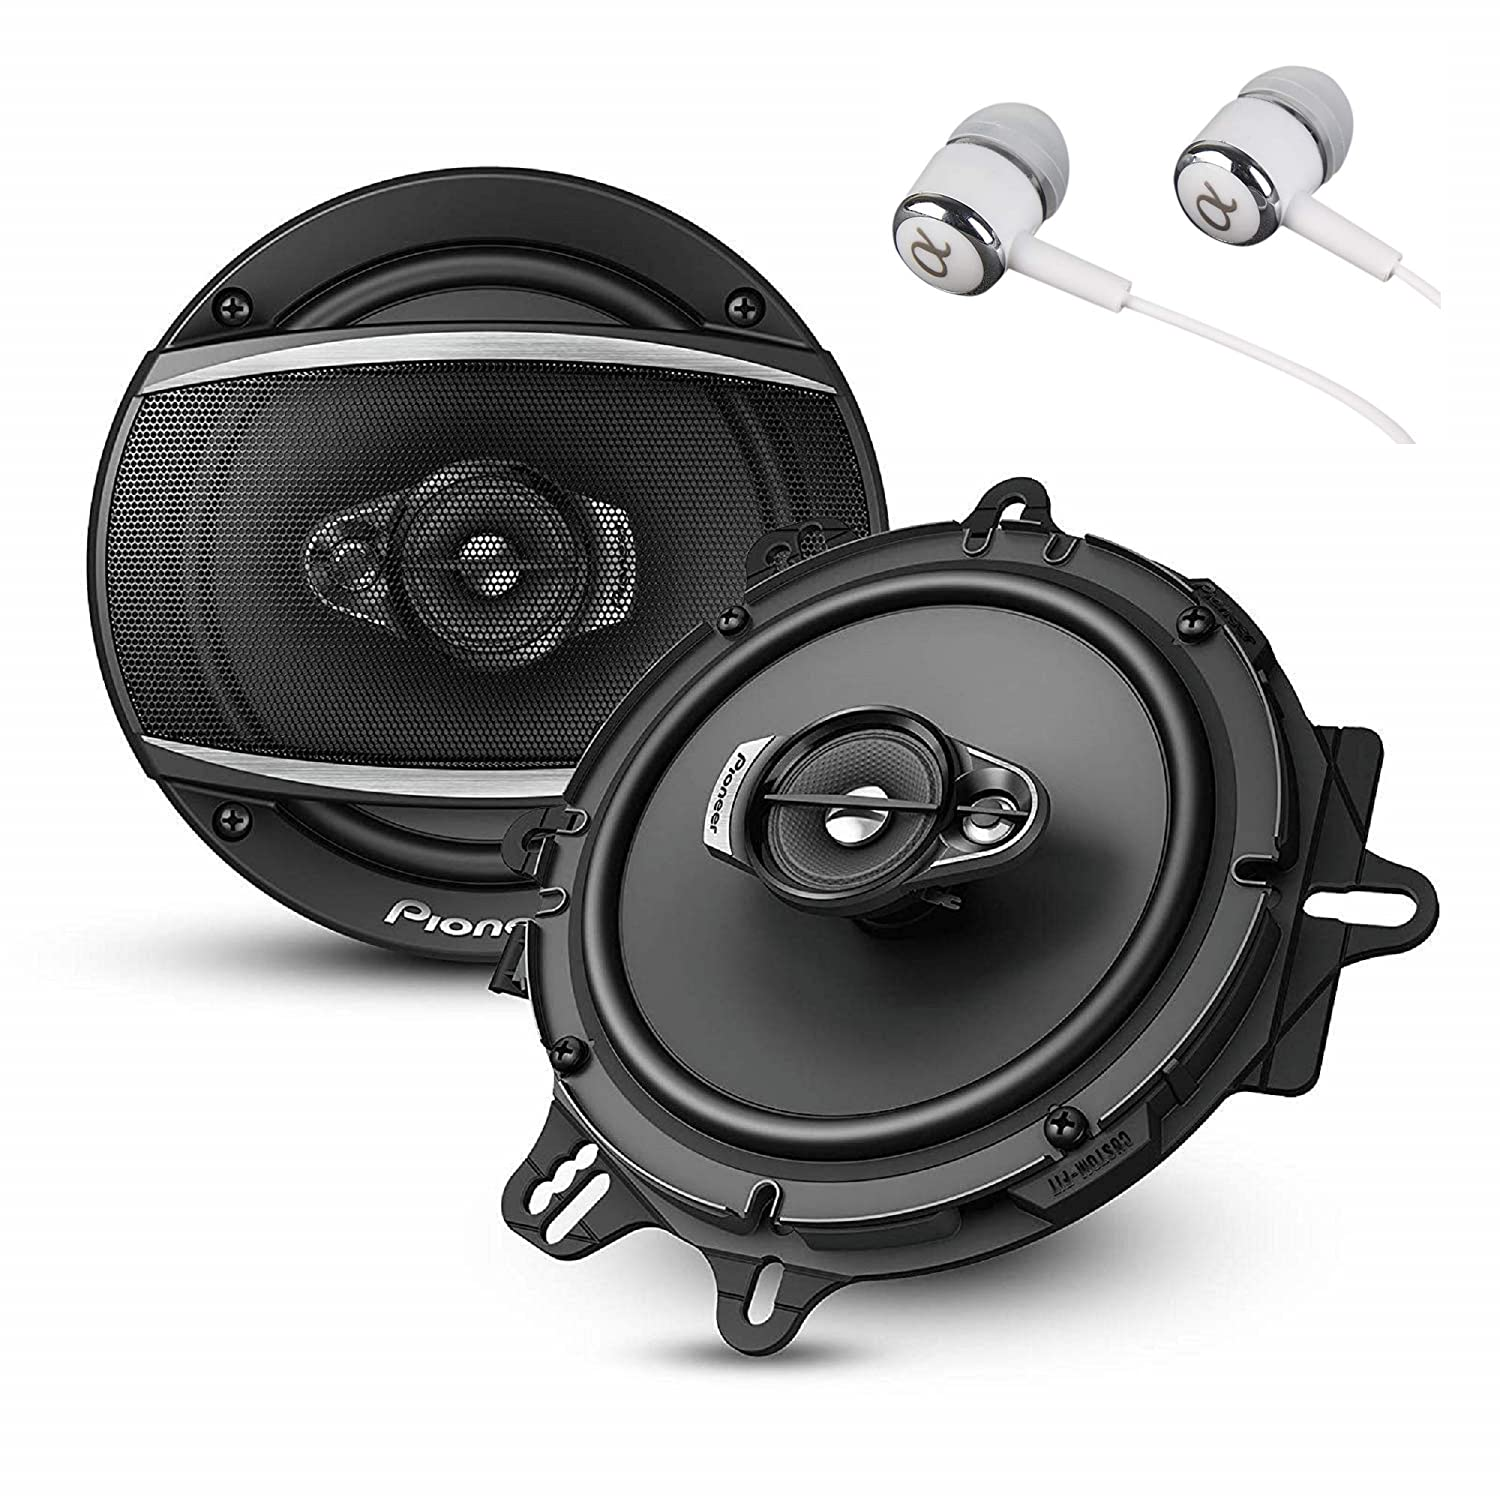 """b026ba88356 Pioneer A Series 6.5"""" 320 Watts Max 3-Way Car Speakers Pair with Fiber Cone  Midrange and 6-1/2"""" Multi-Fit Installation Adapters Included w/ FREE  ALPHASONIK ..."""